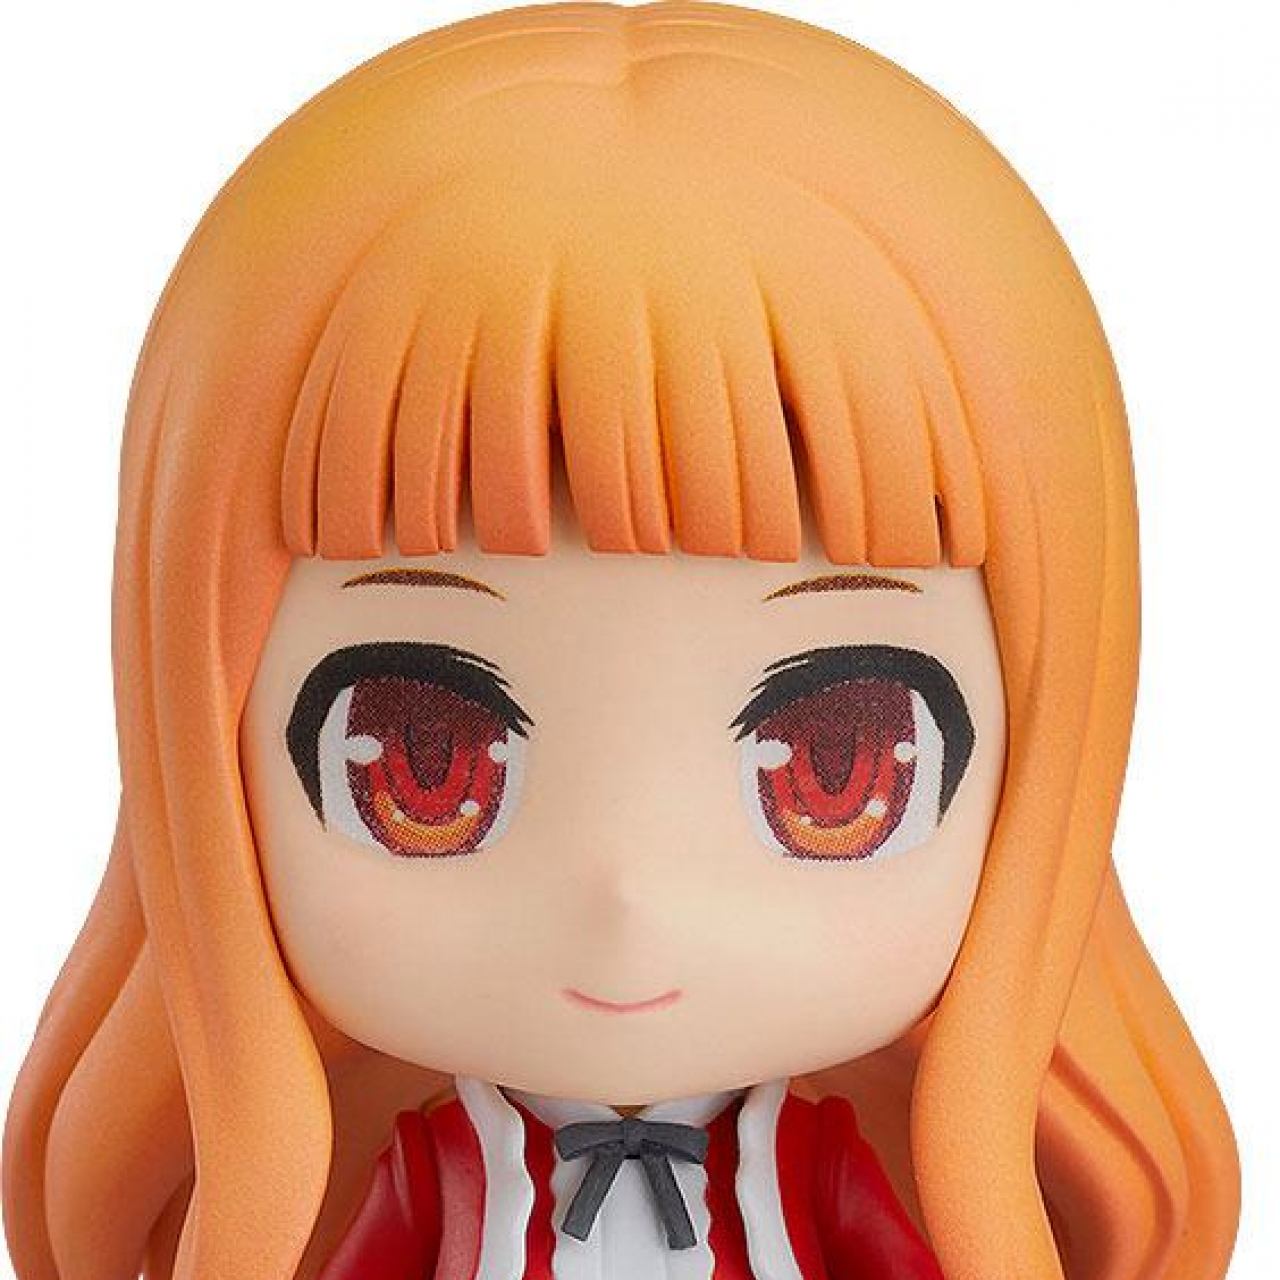 Original Character Nendoroid Action Figure MMD User Model Lady Rhea 10 cm